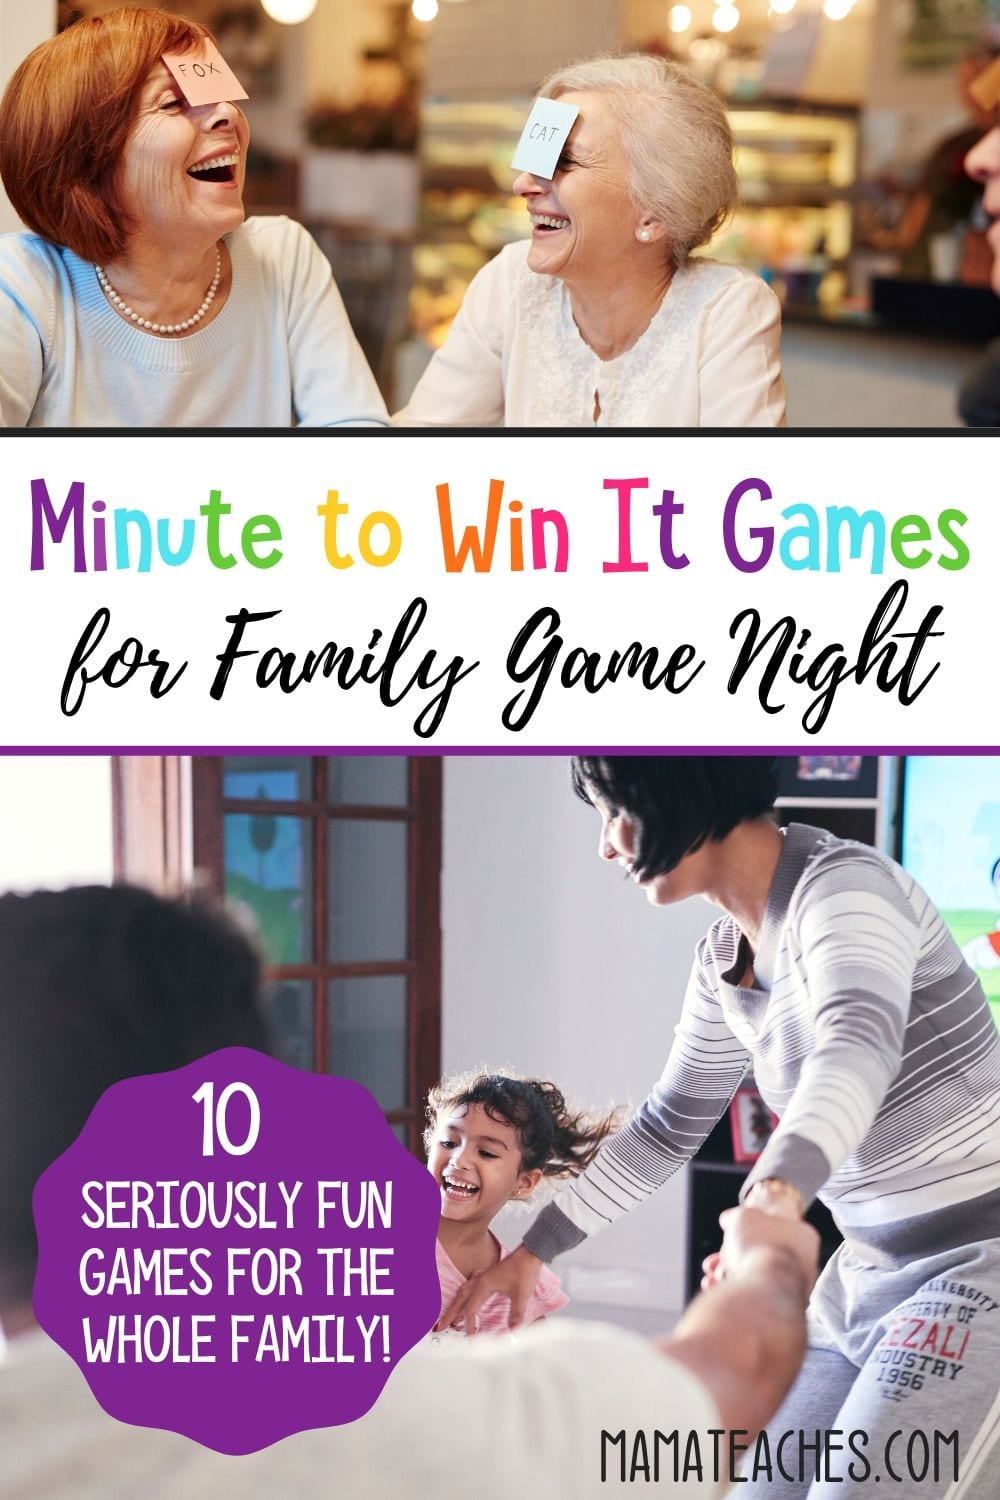 10 Minute to Win It Games for Family Game Night - MamaTeaches.com